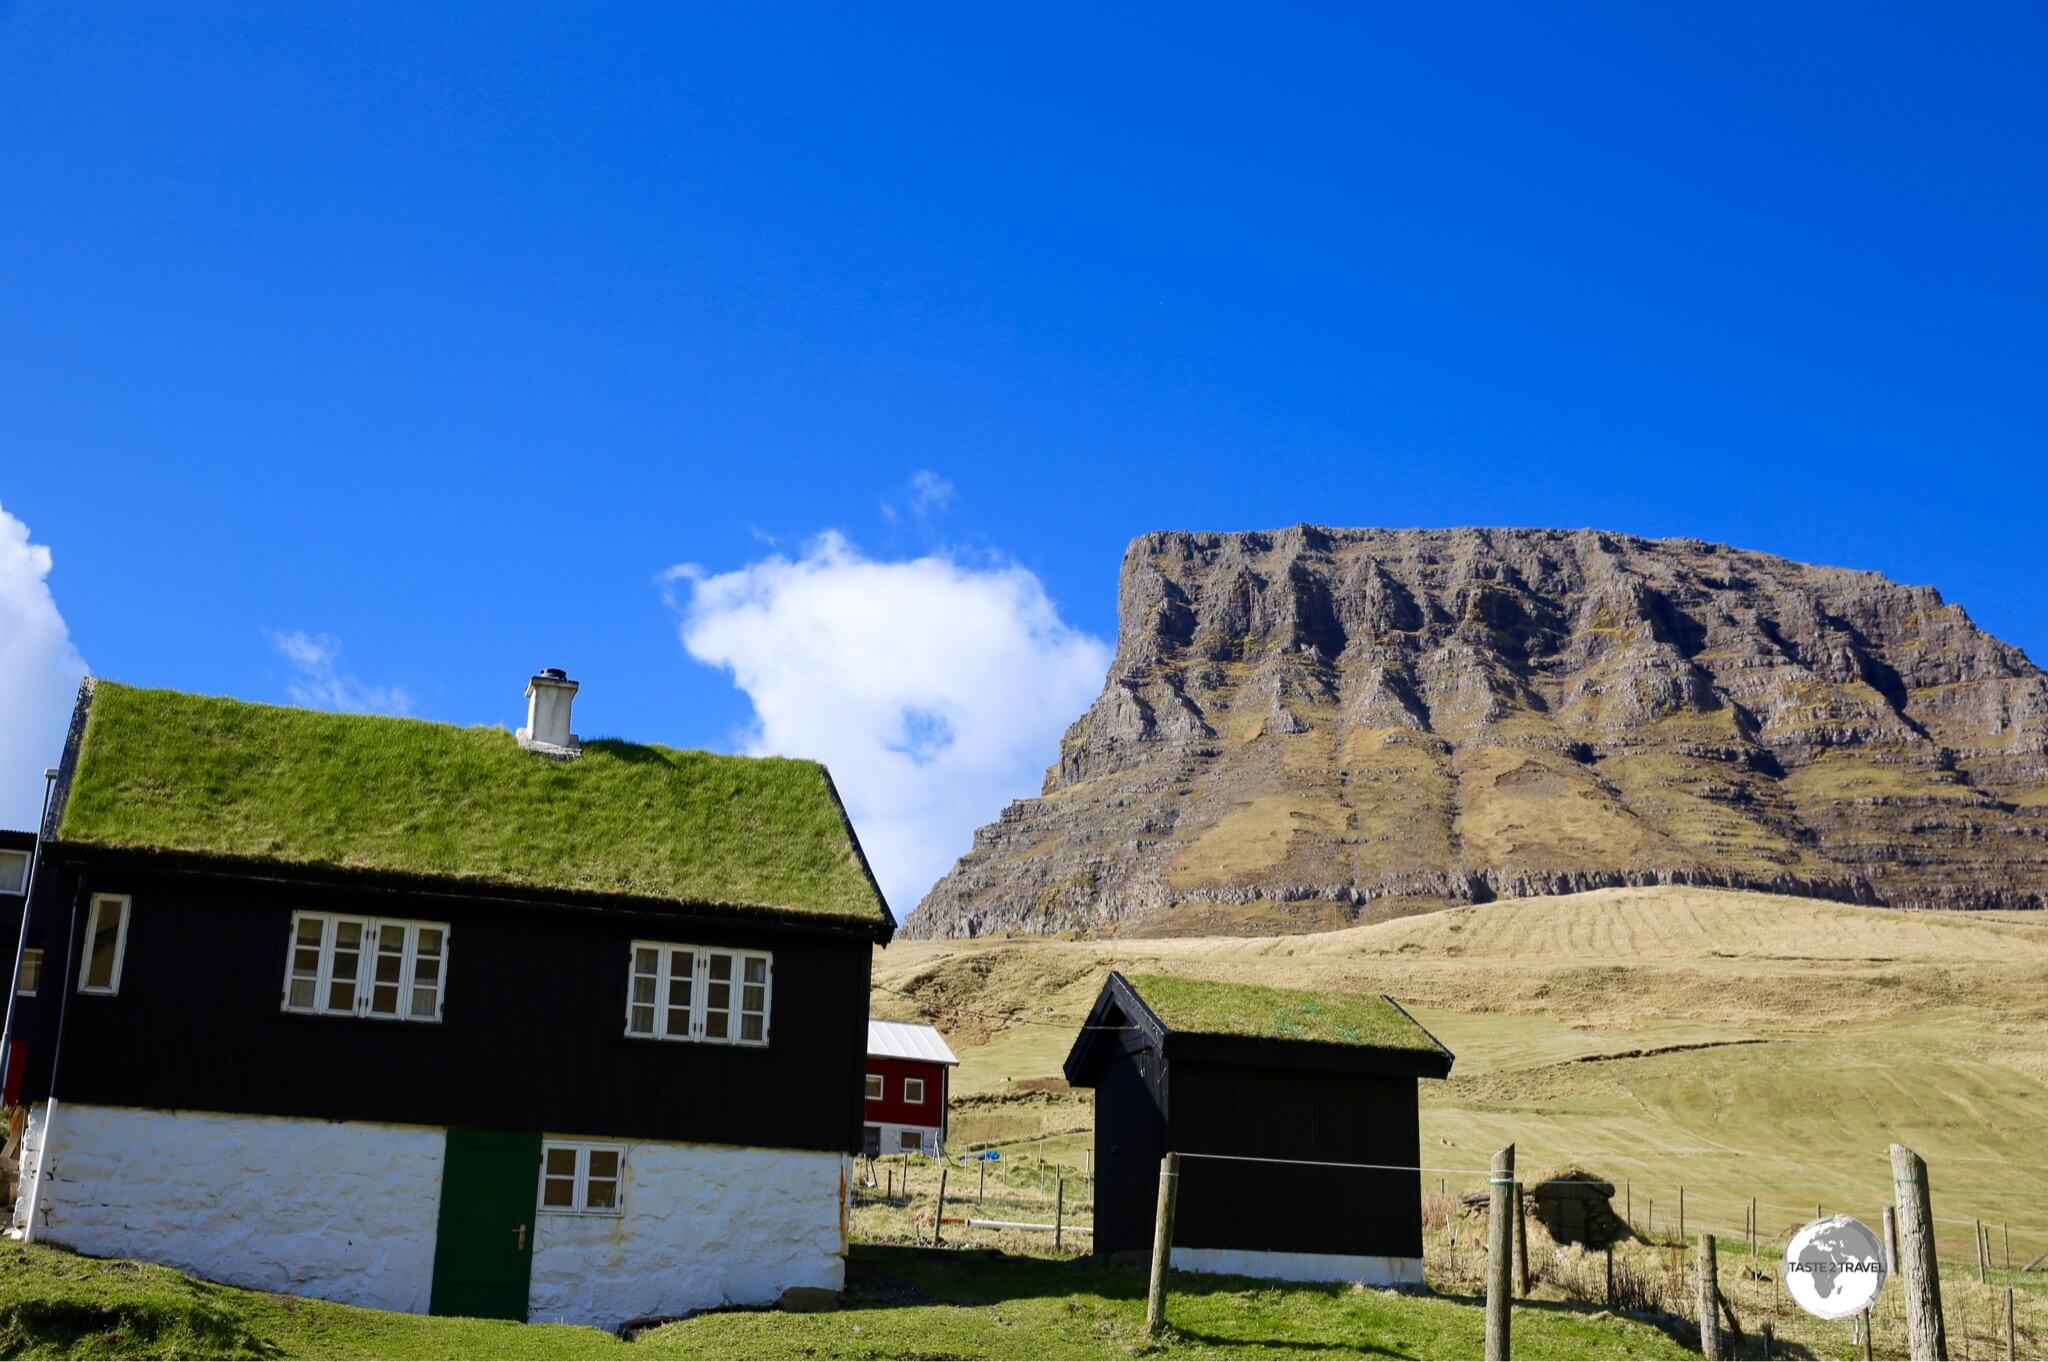 While there are no 5-star hotels, the Faroe Islands offer accommodation in private houses and apartments.